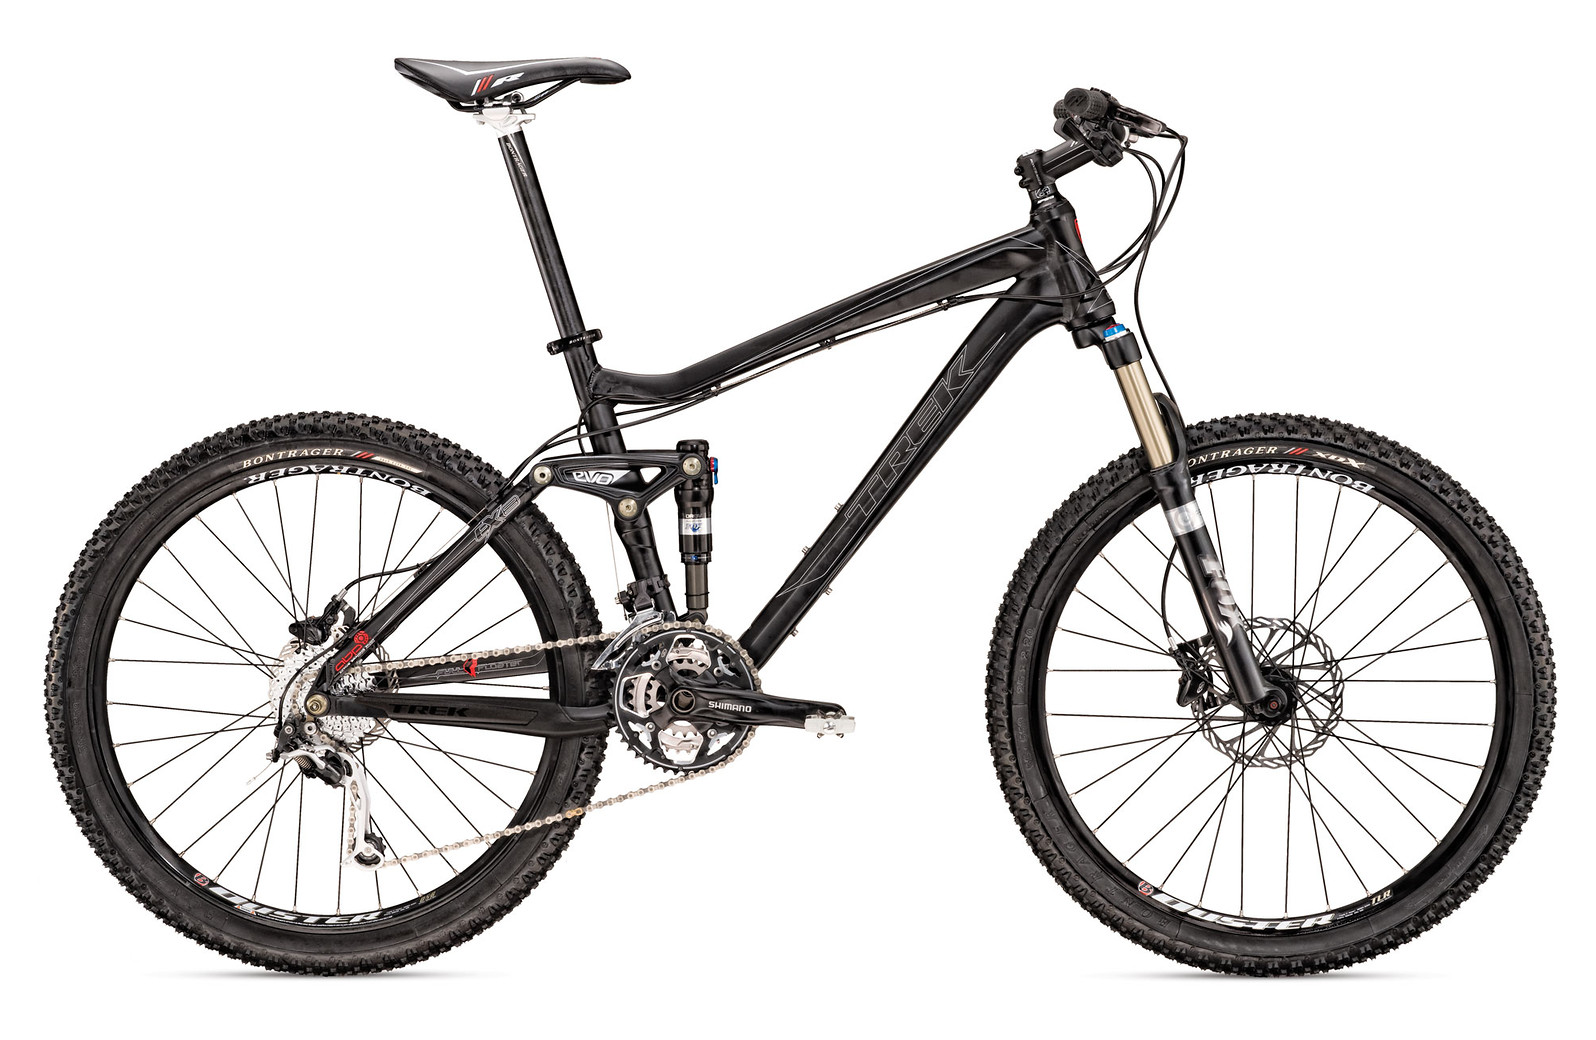 2010 Trek EX 8 Bike fuelex8_black